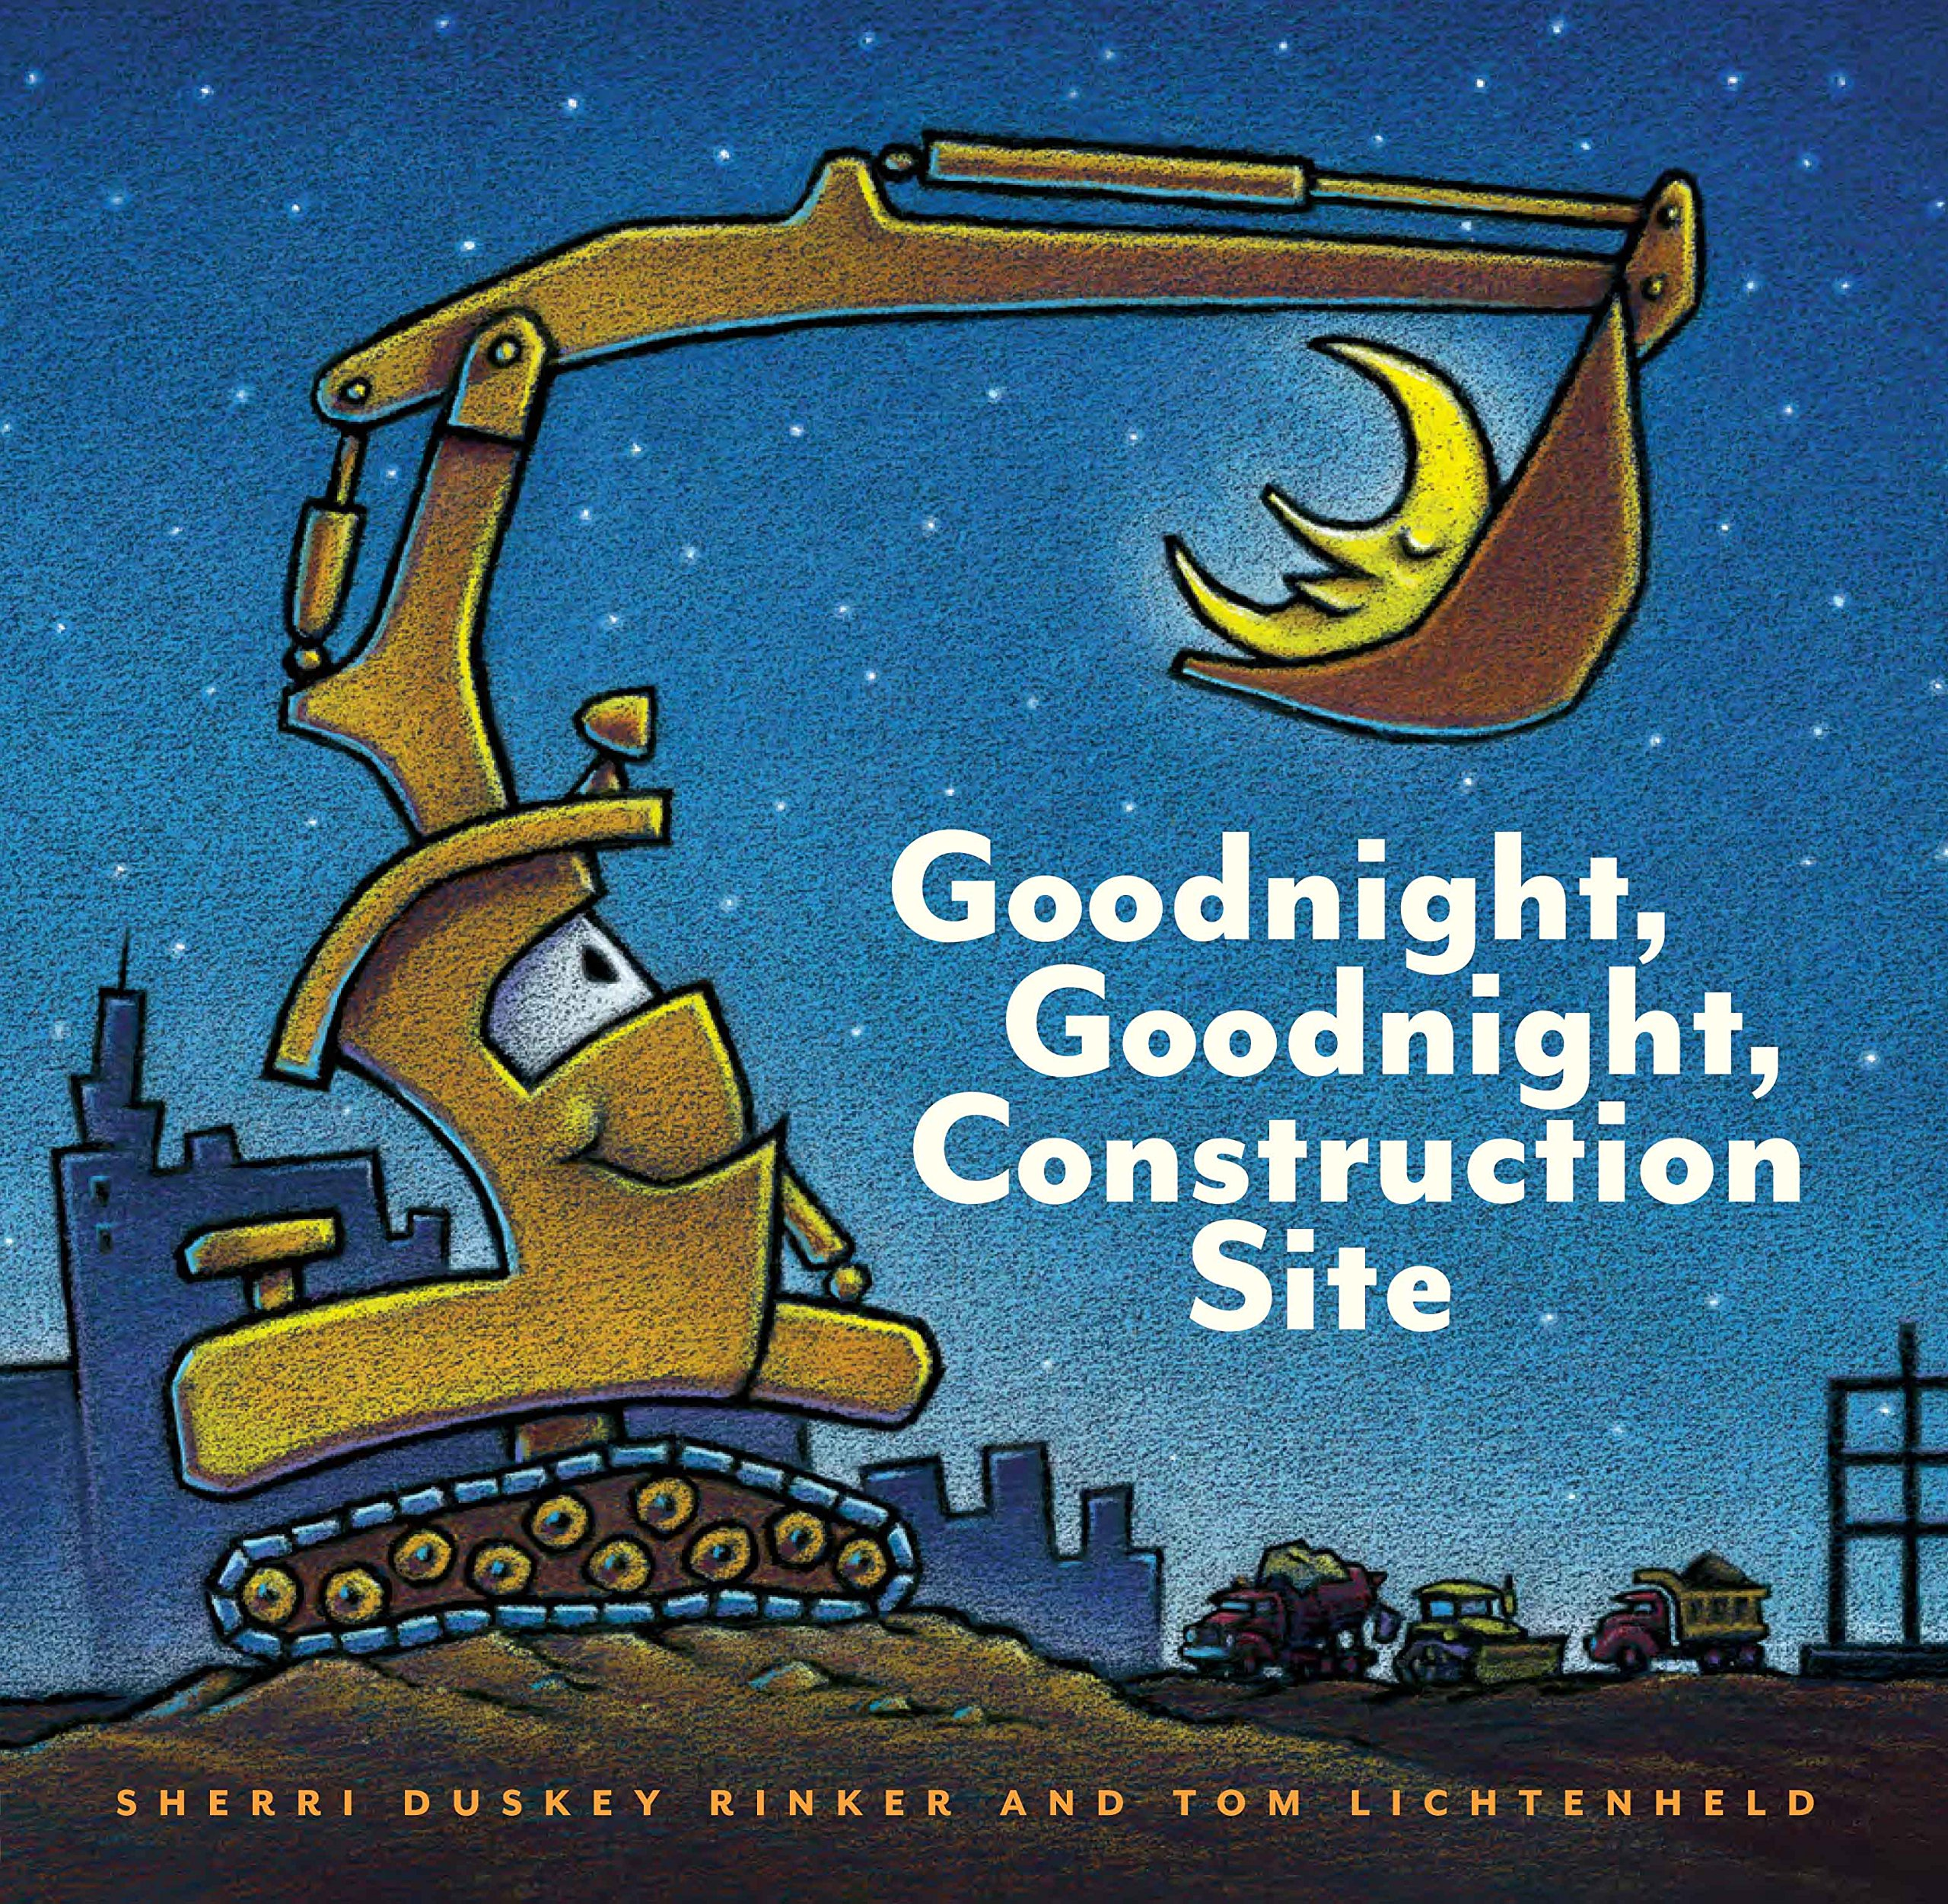 Goodnight Construction Site